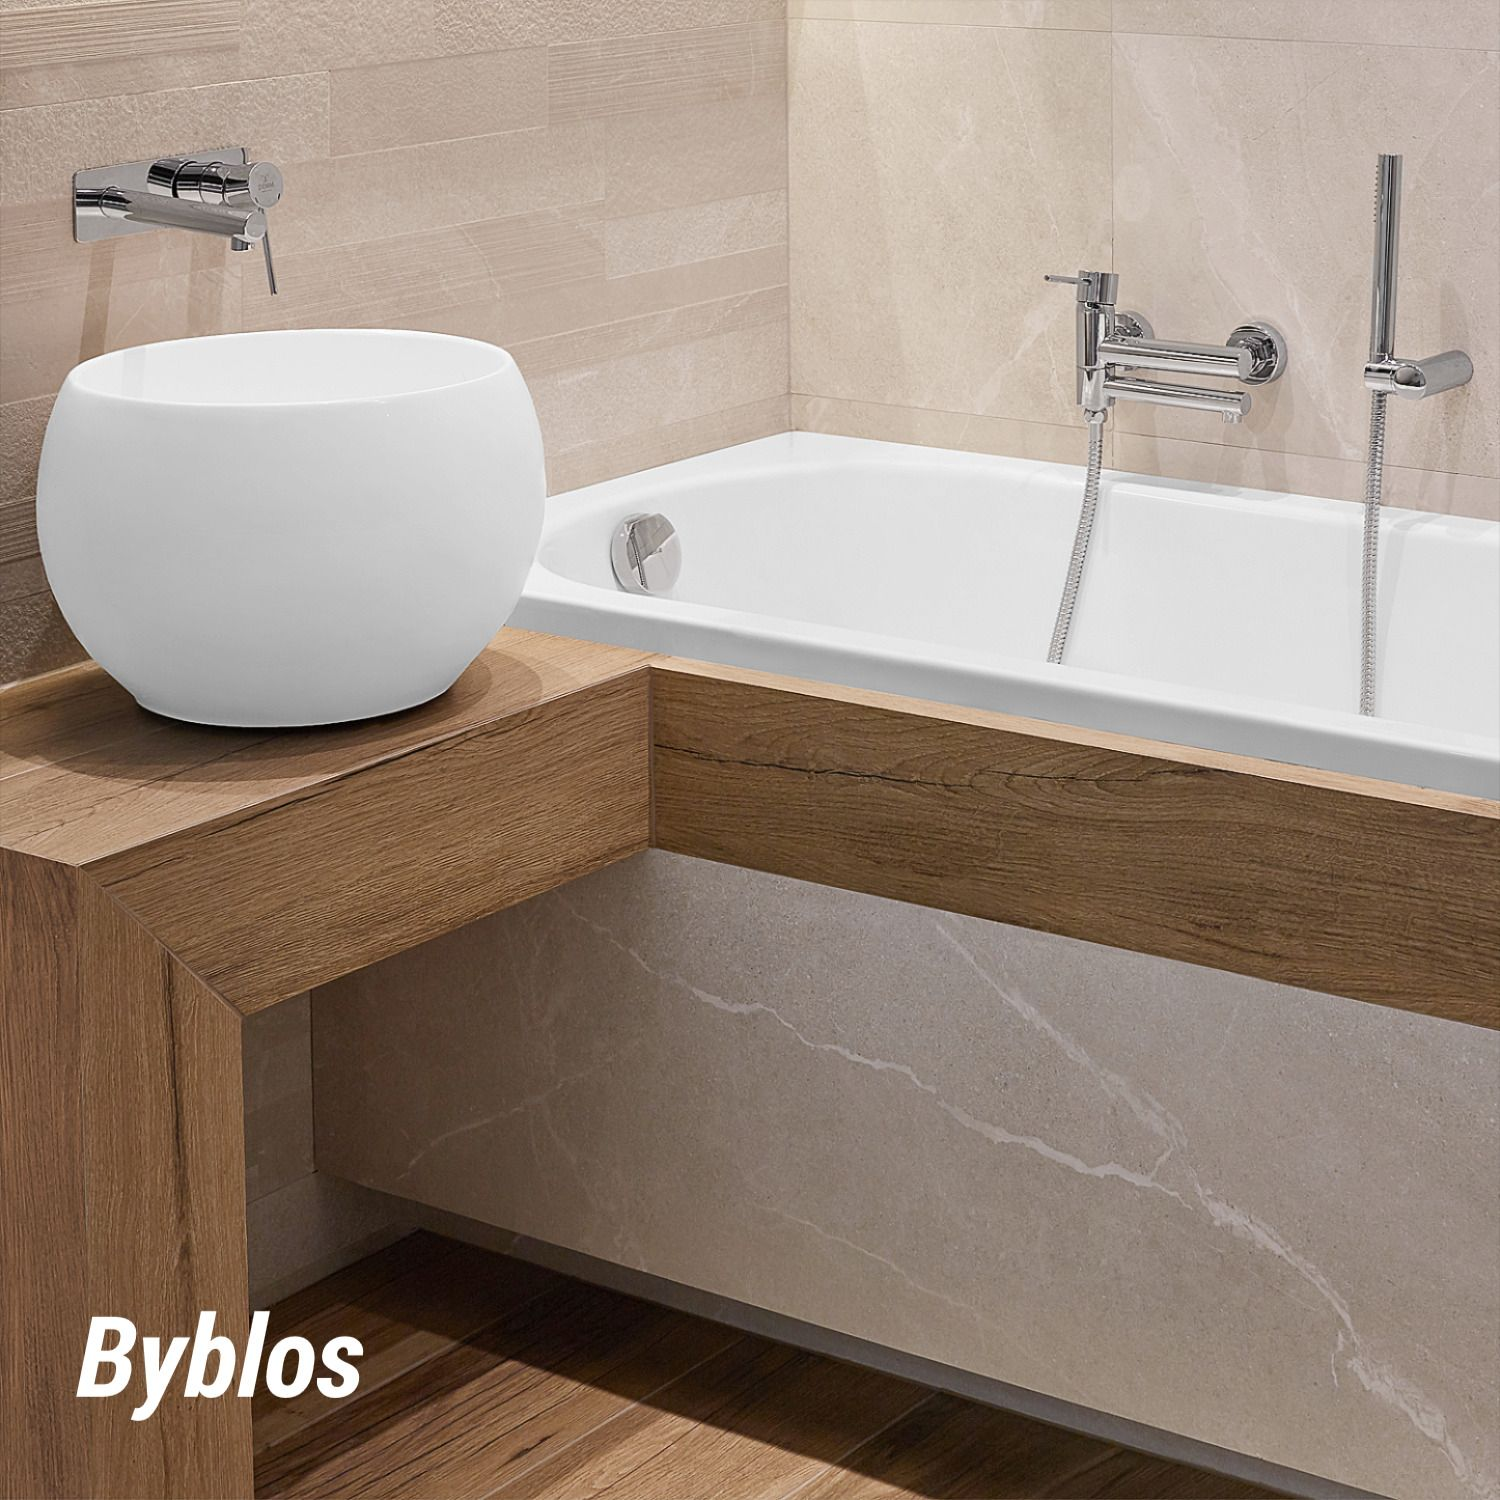 Byblos Arena By Hoff Home Decor Wood Byblos